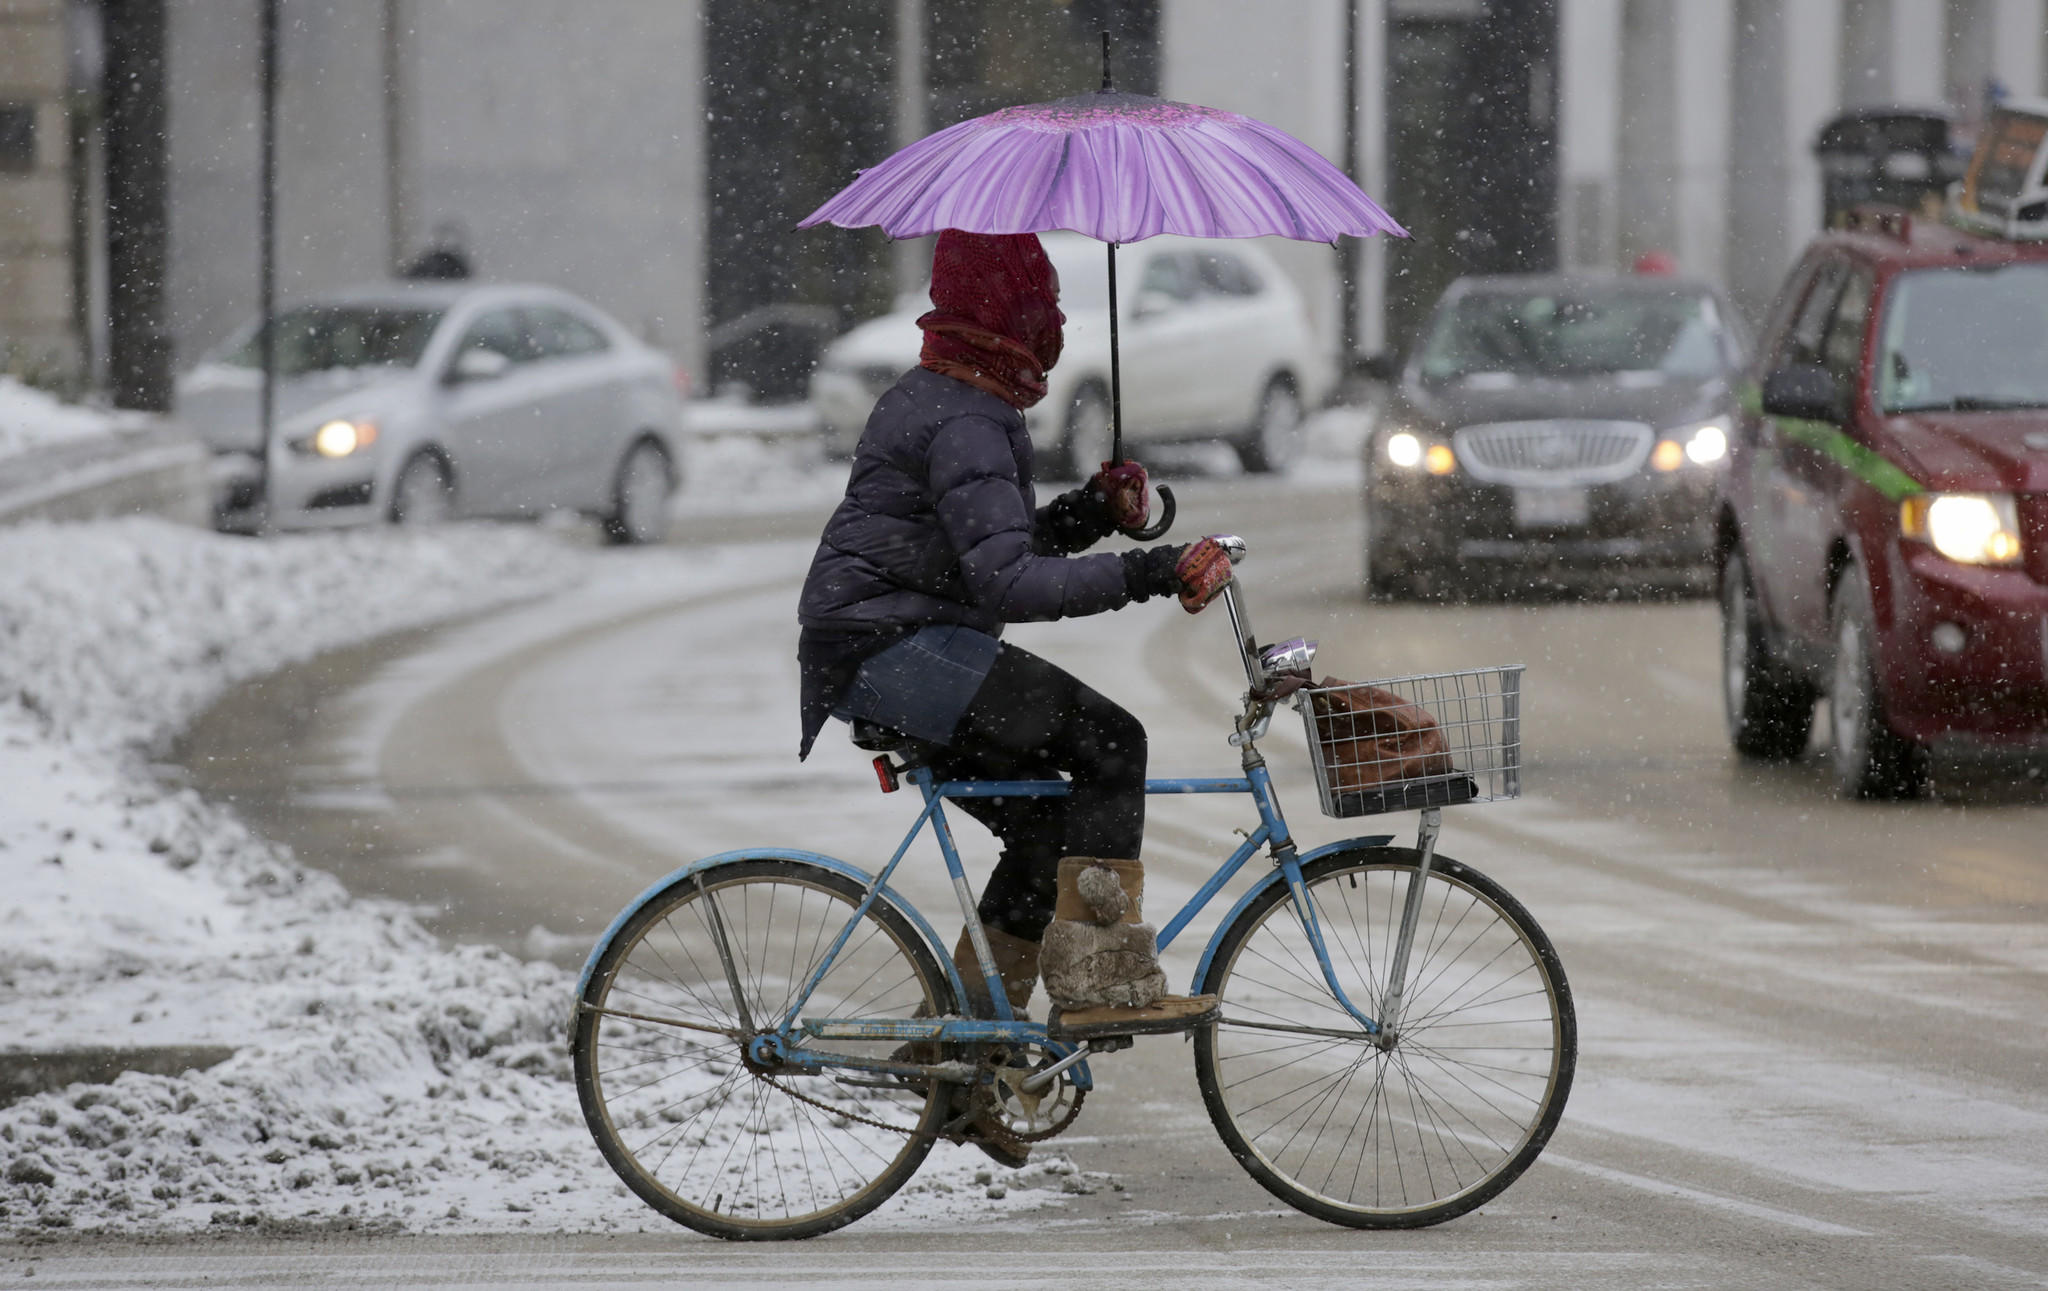 A cyclist fends off snow with an umbrella while riding north on Wabash Avenue at Wacker Drive Monday.